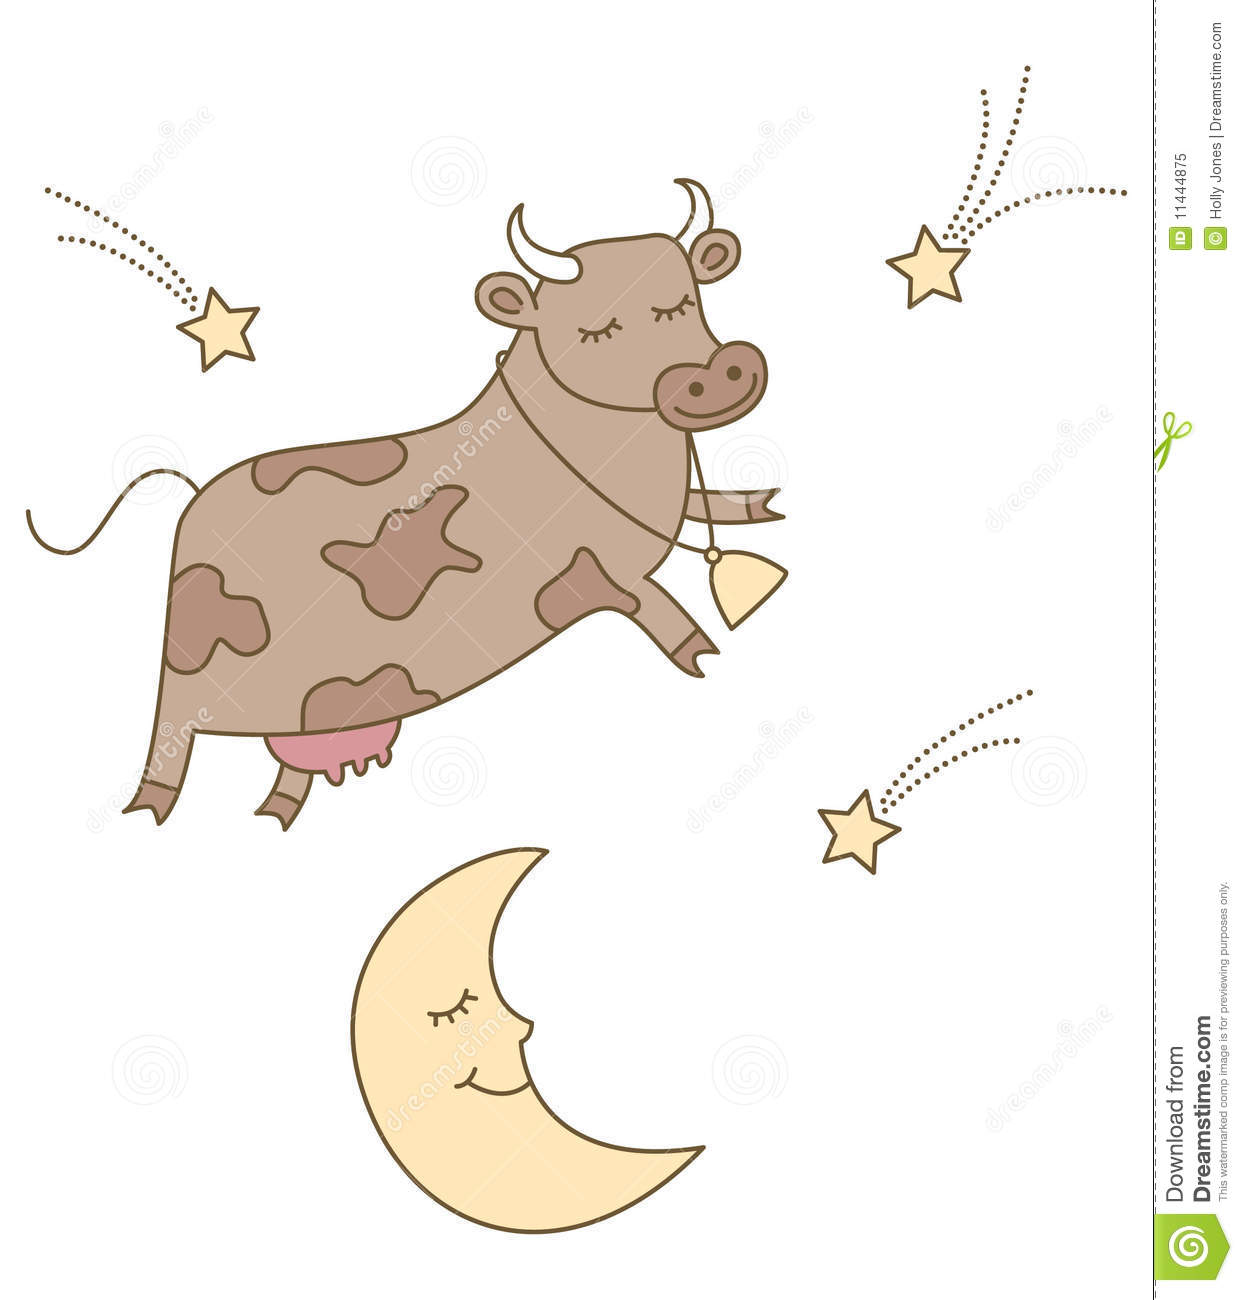 The Cow Jumped Over The Moon | www.pixshark.com - Images ...